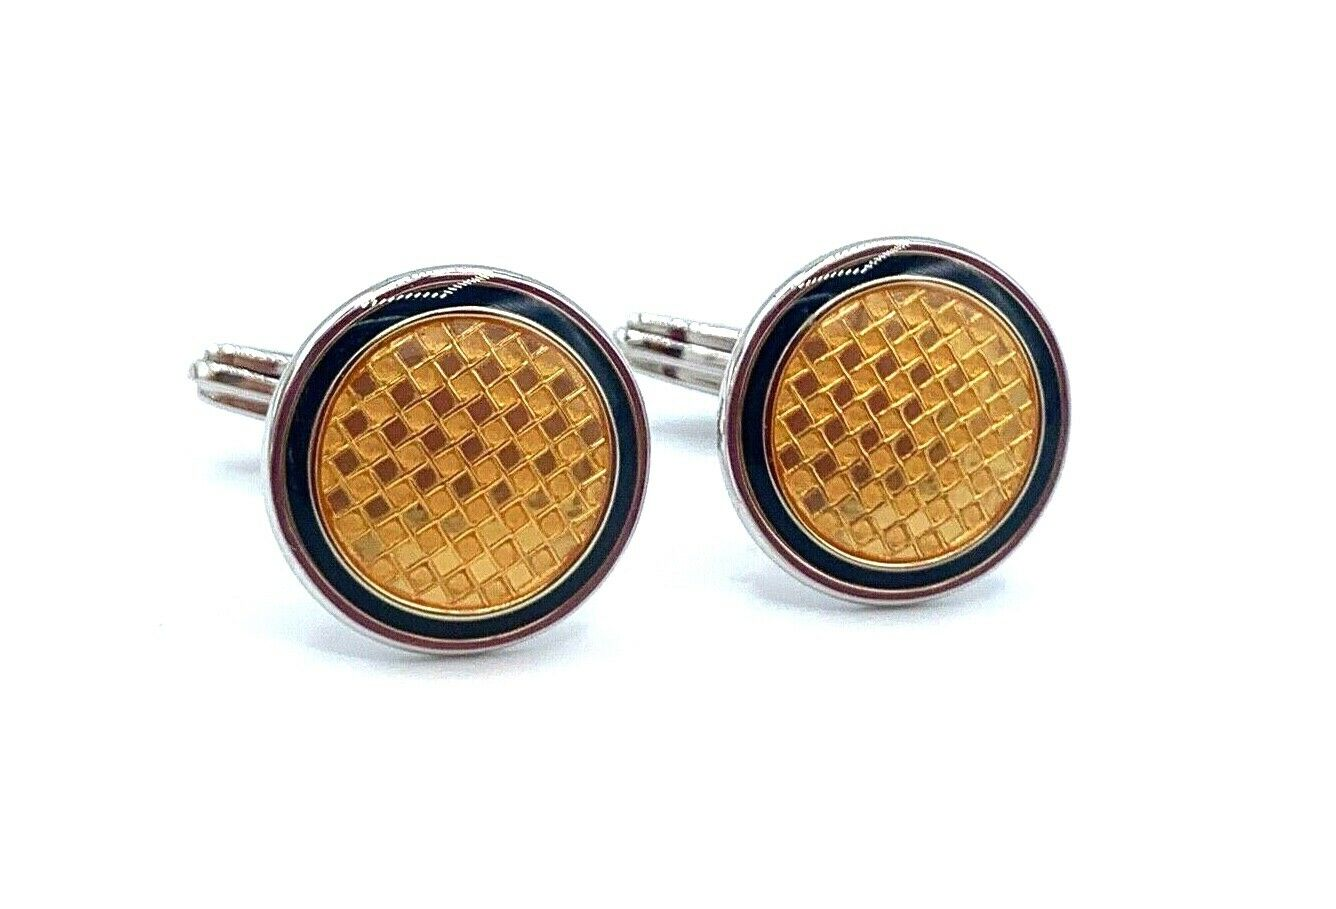 Dunhill Yellow Checkered 925 Sterling Silver Mens Cufflinks Gift 123793285572 2